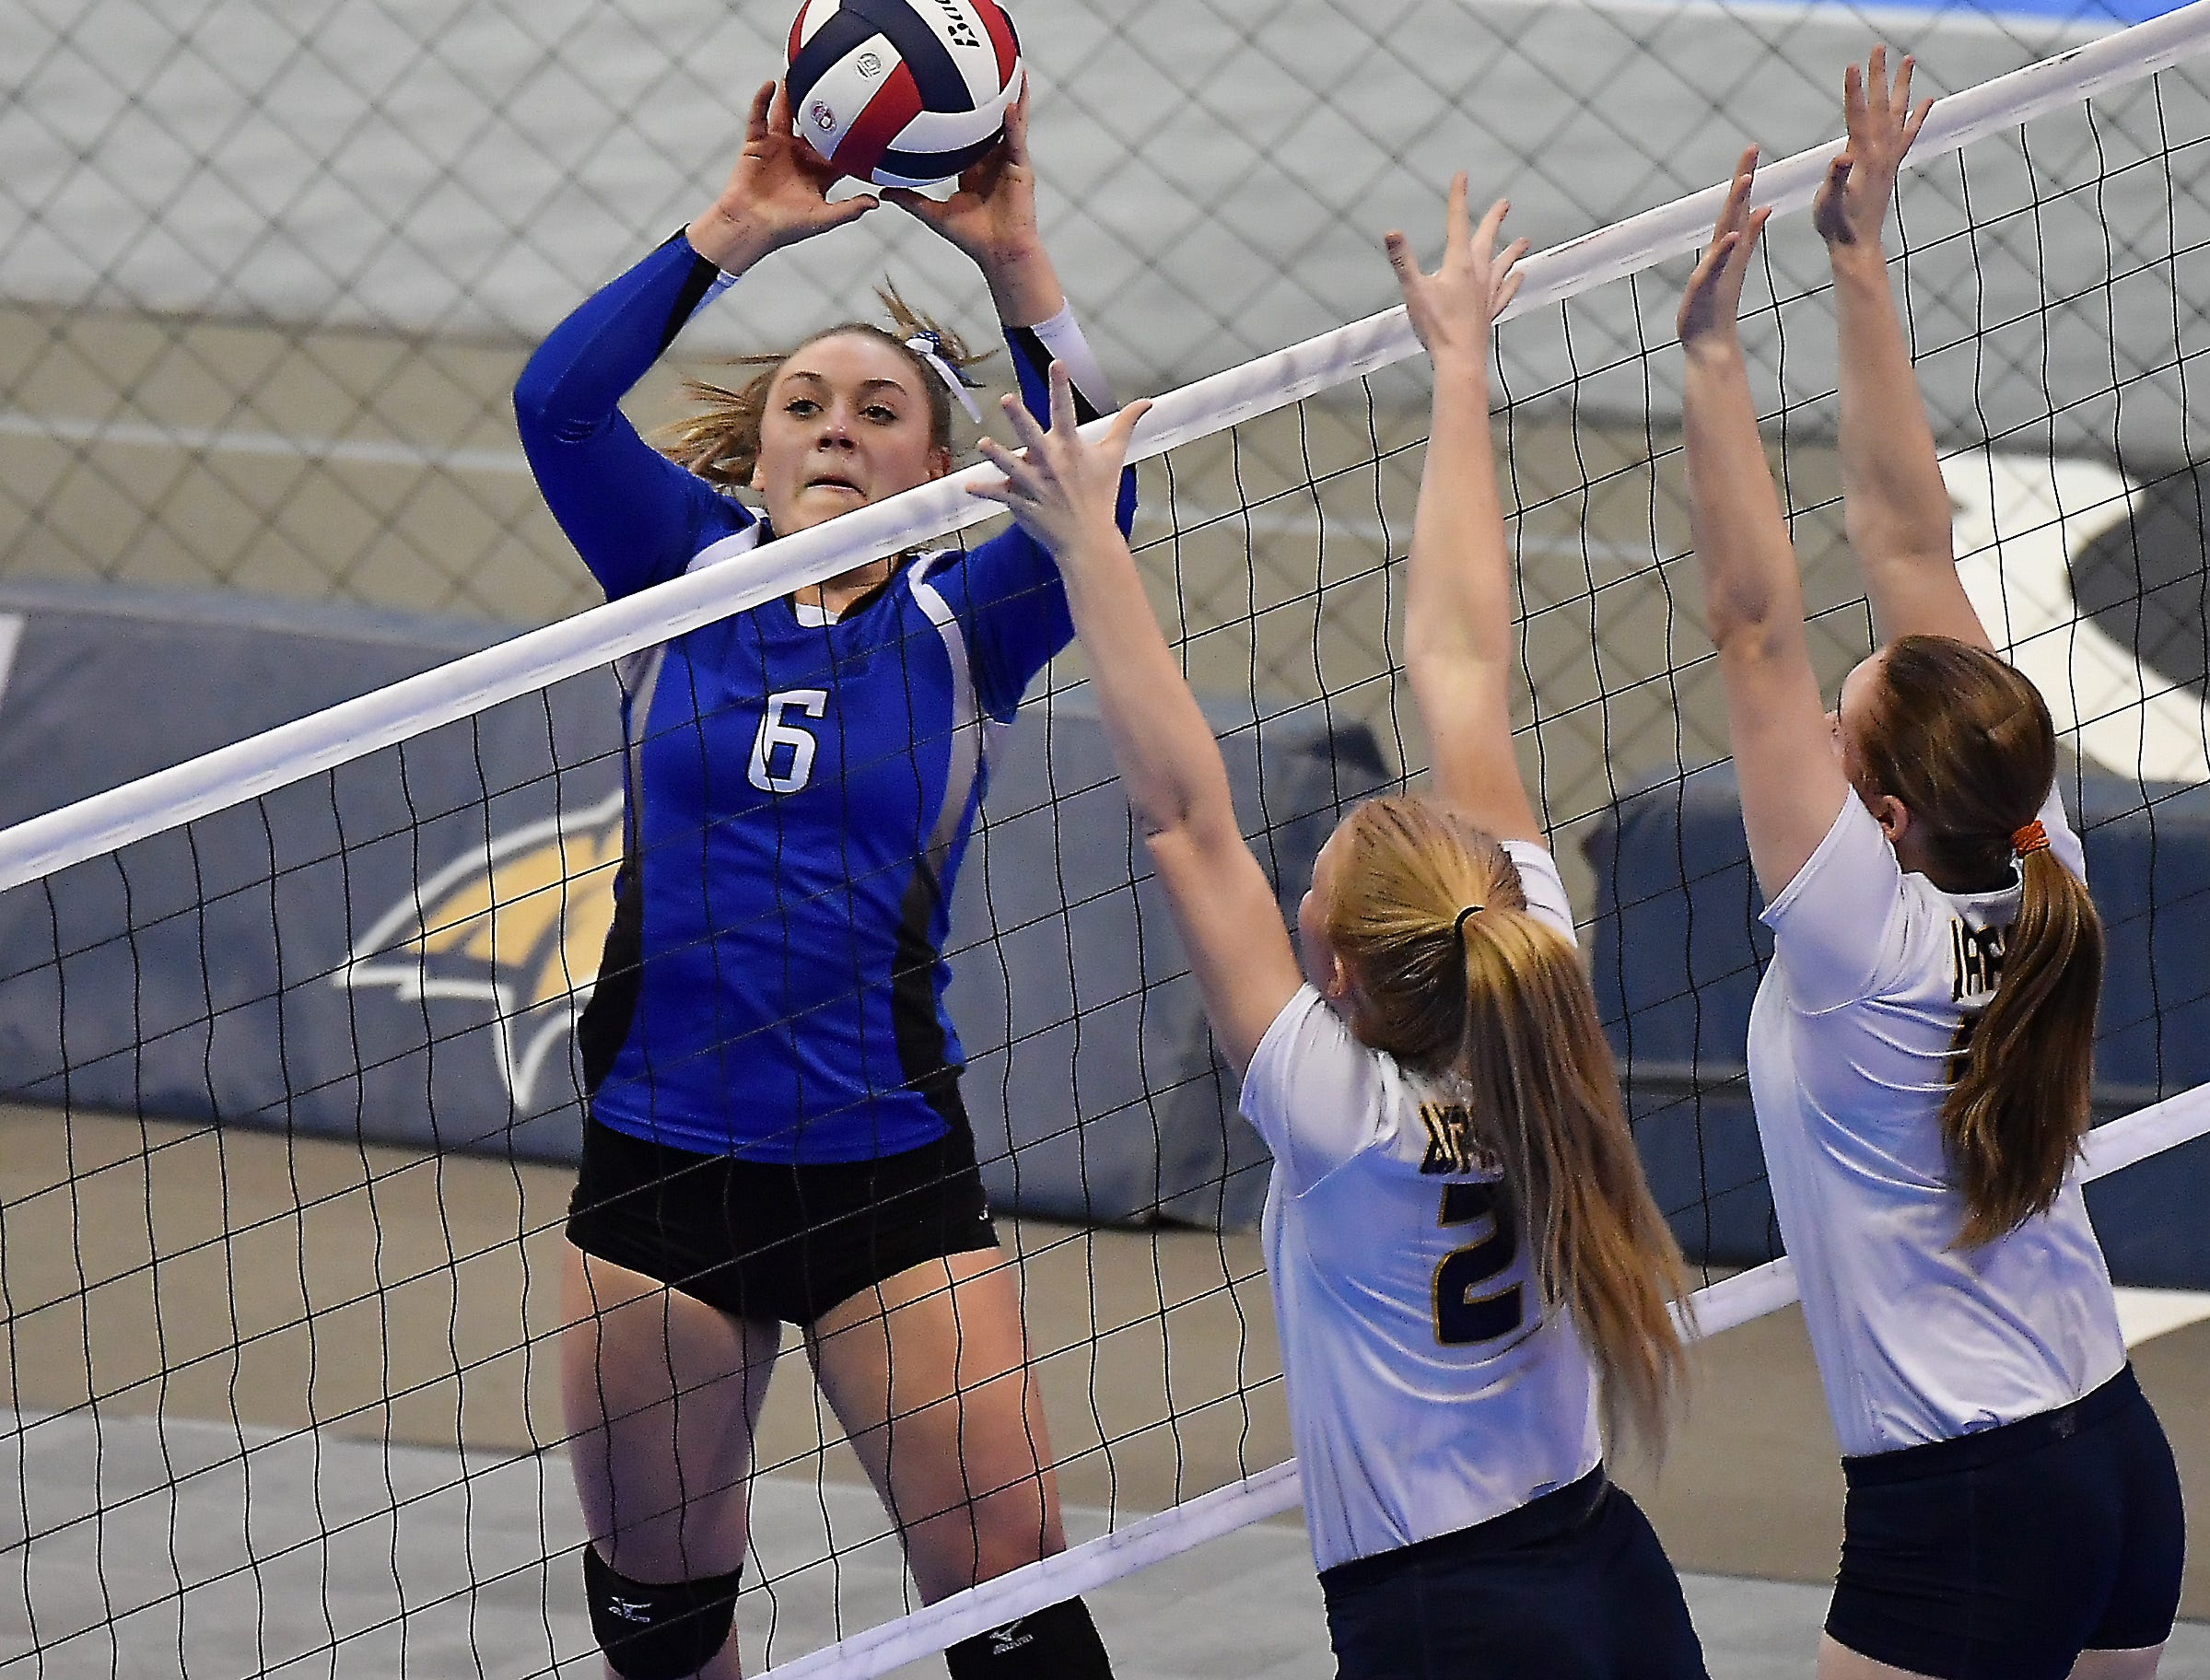 Kenna Pitcher of Fairfield sets during a match with Deer Lodge at the All-Class State Volleyball Tournament at the Brick Breeden Fieldhouse in Bozeman.